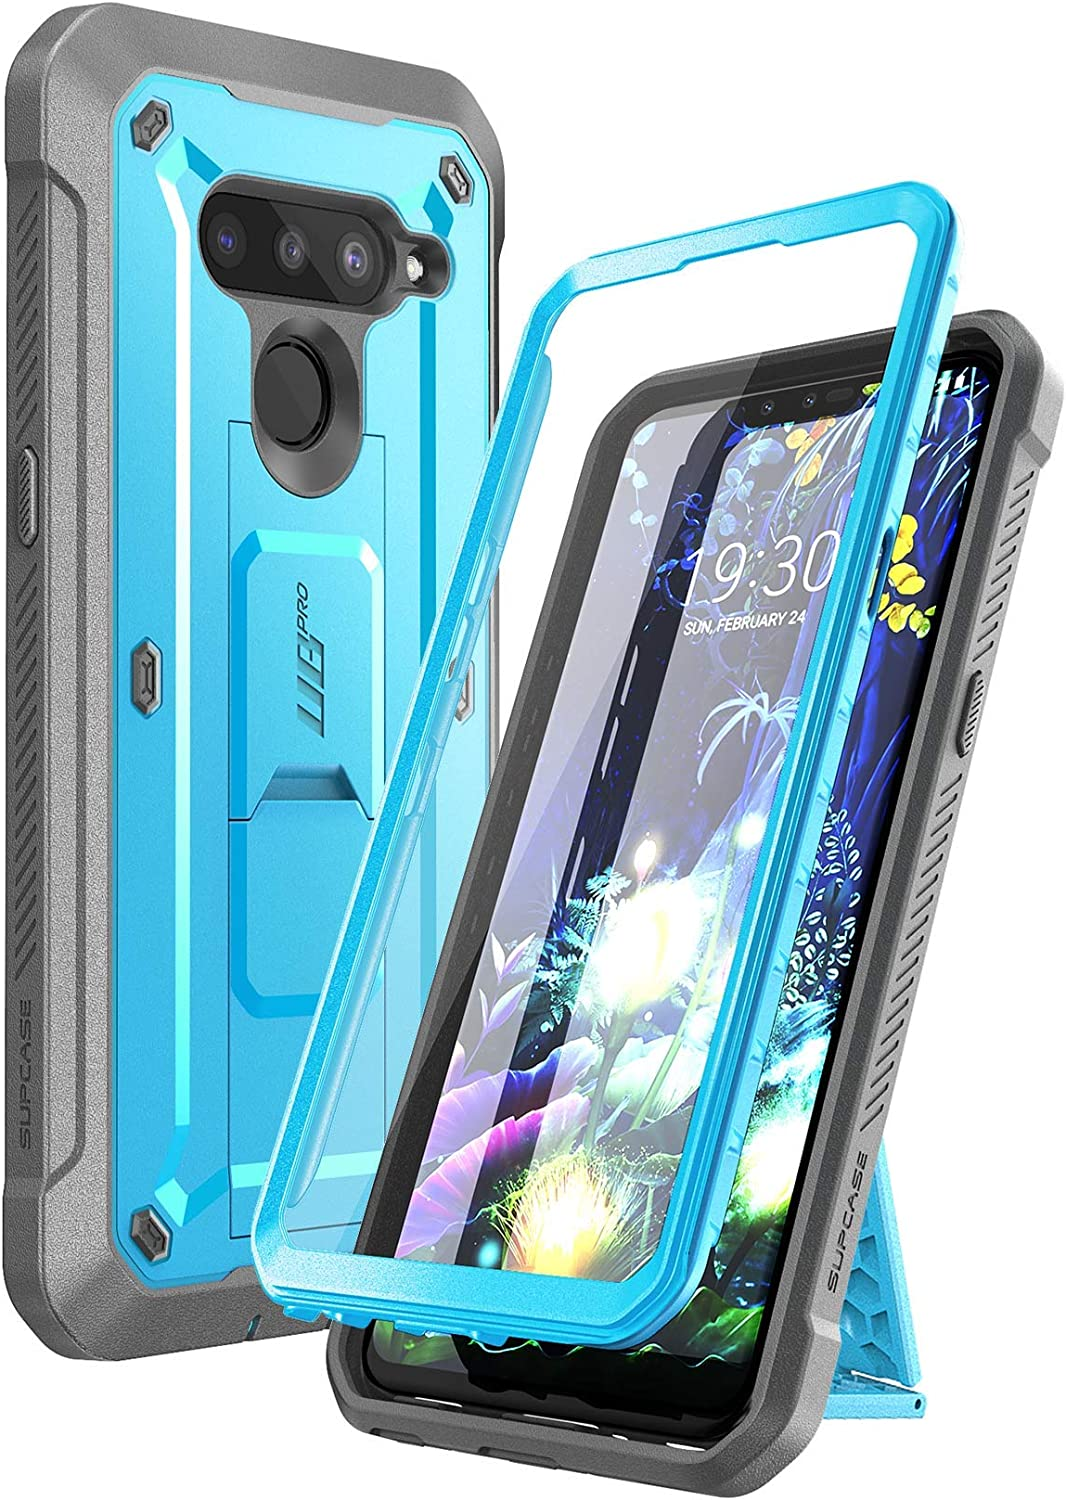 SupCase Unicorn Beetle PRO Series Case for LG V50 / LG V50 ThinQ 5G Case 2019, Full-Body Protective Case with Built-in Screen Protector Kickstand & Holster Clip (Blue)